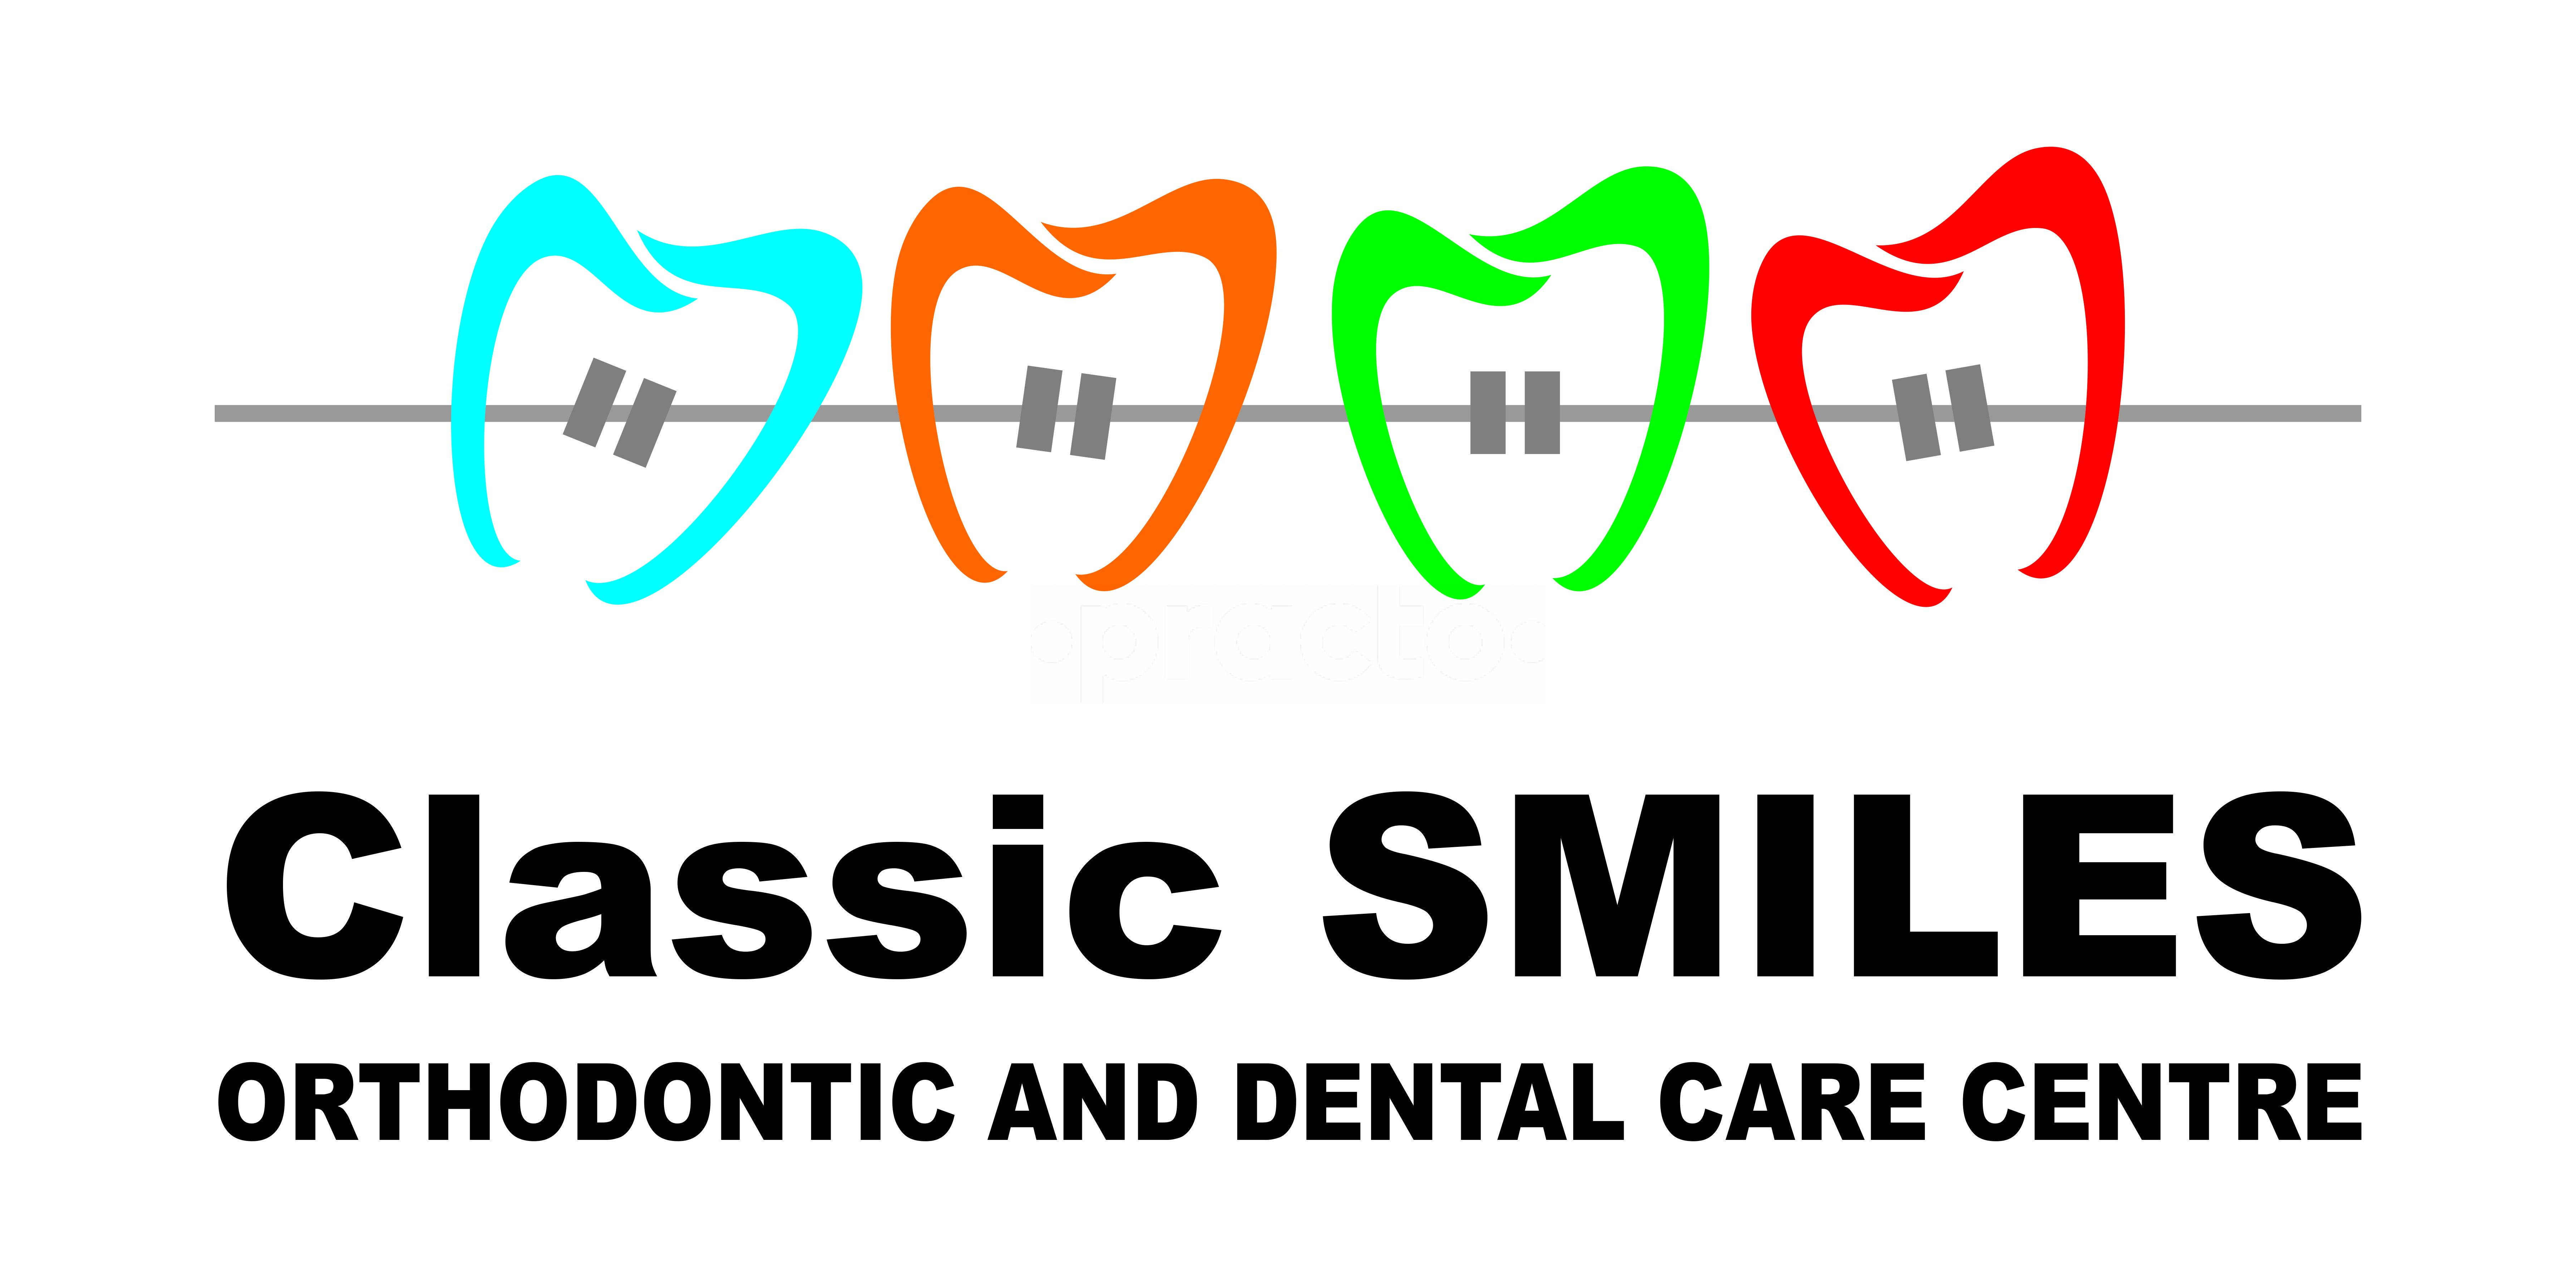 Classic Smiles Orthodontic and Dental Care Centre